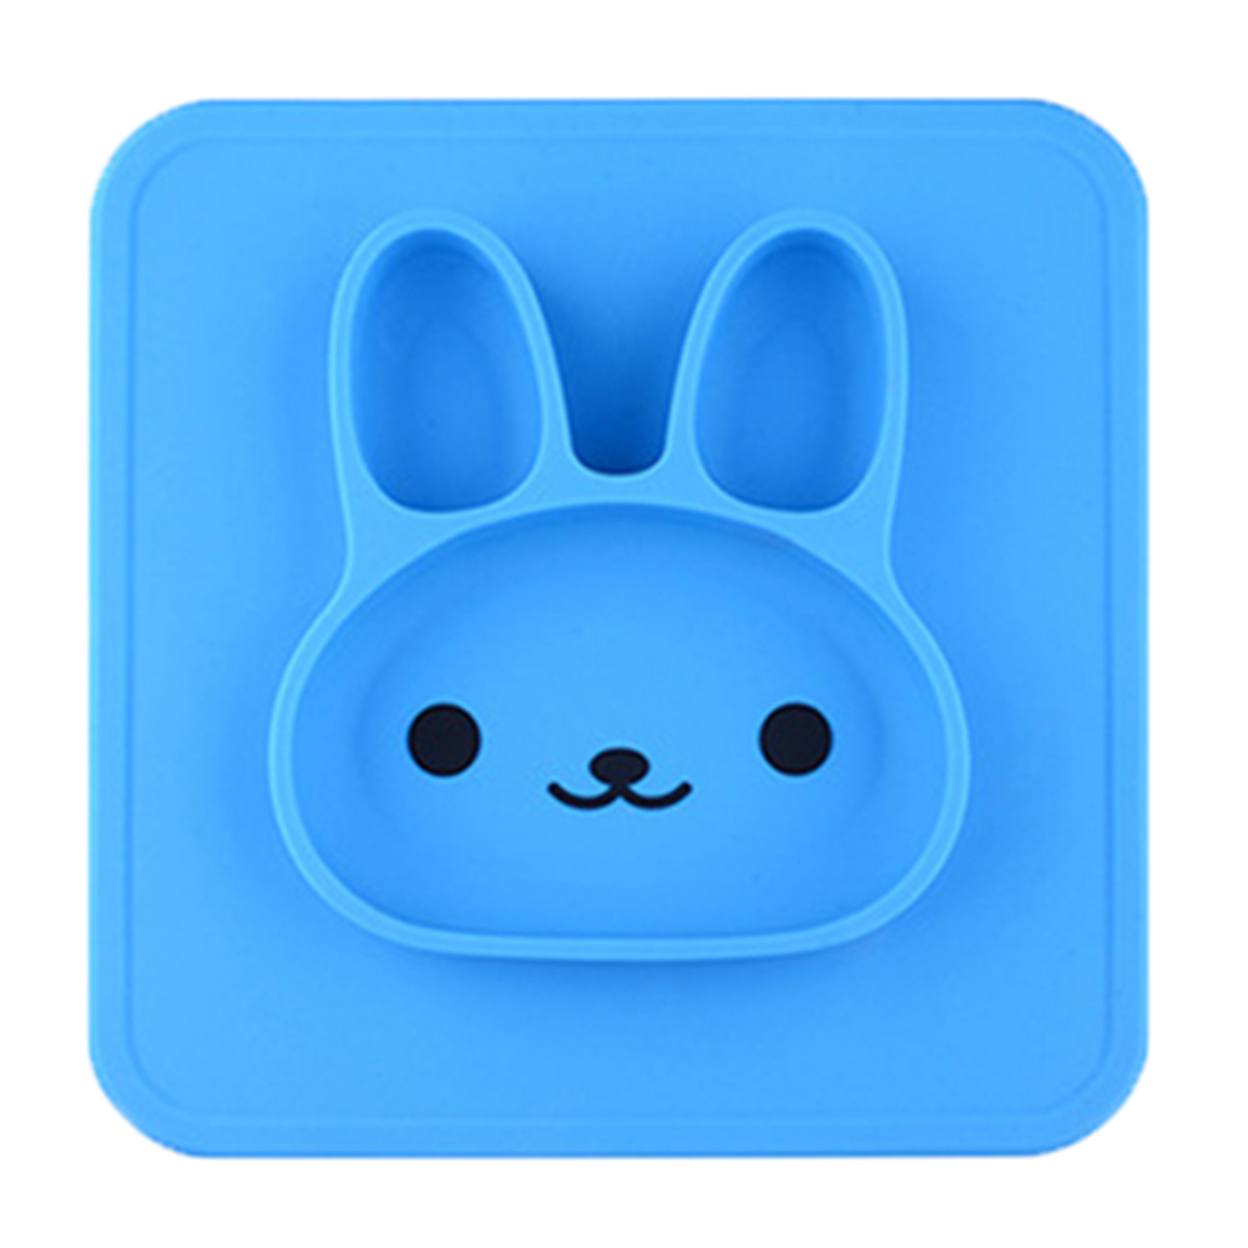 New Beauty Rabbit Cartoon Food Grade Silicone Plate Fruits Dishes Bowl for Kids 59c4be3b2a00e459651cf4d3